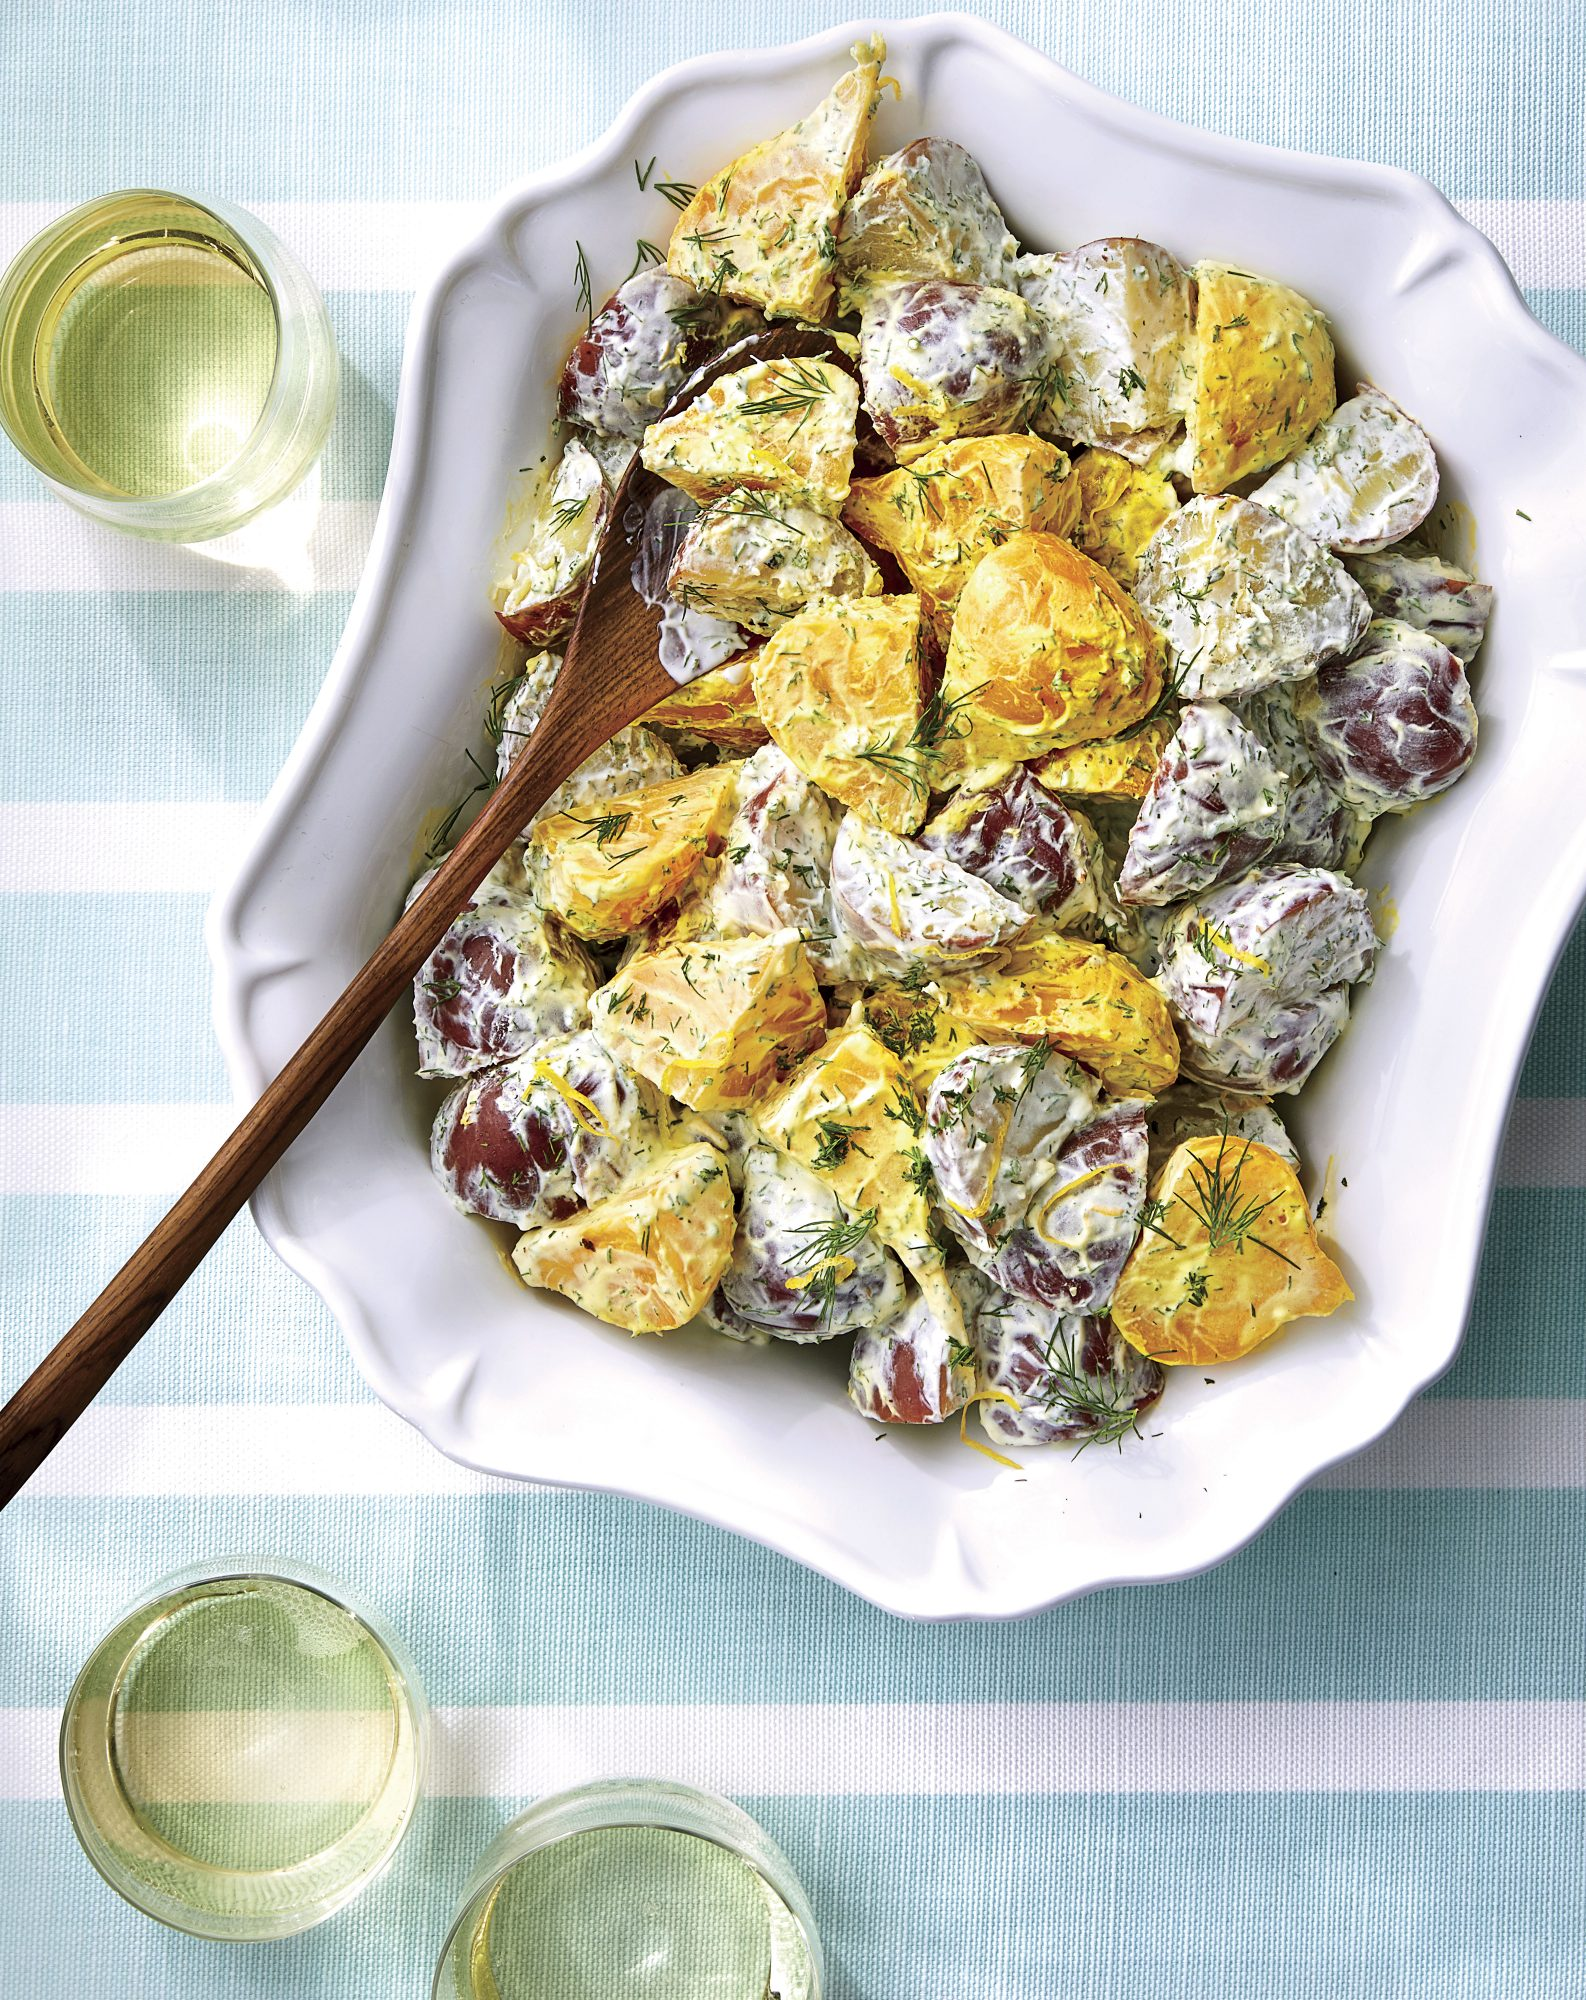 Lemon Dill Potato Beet Salad